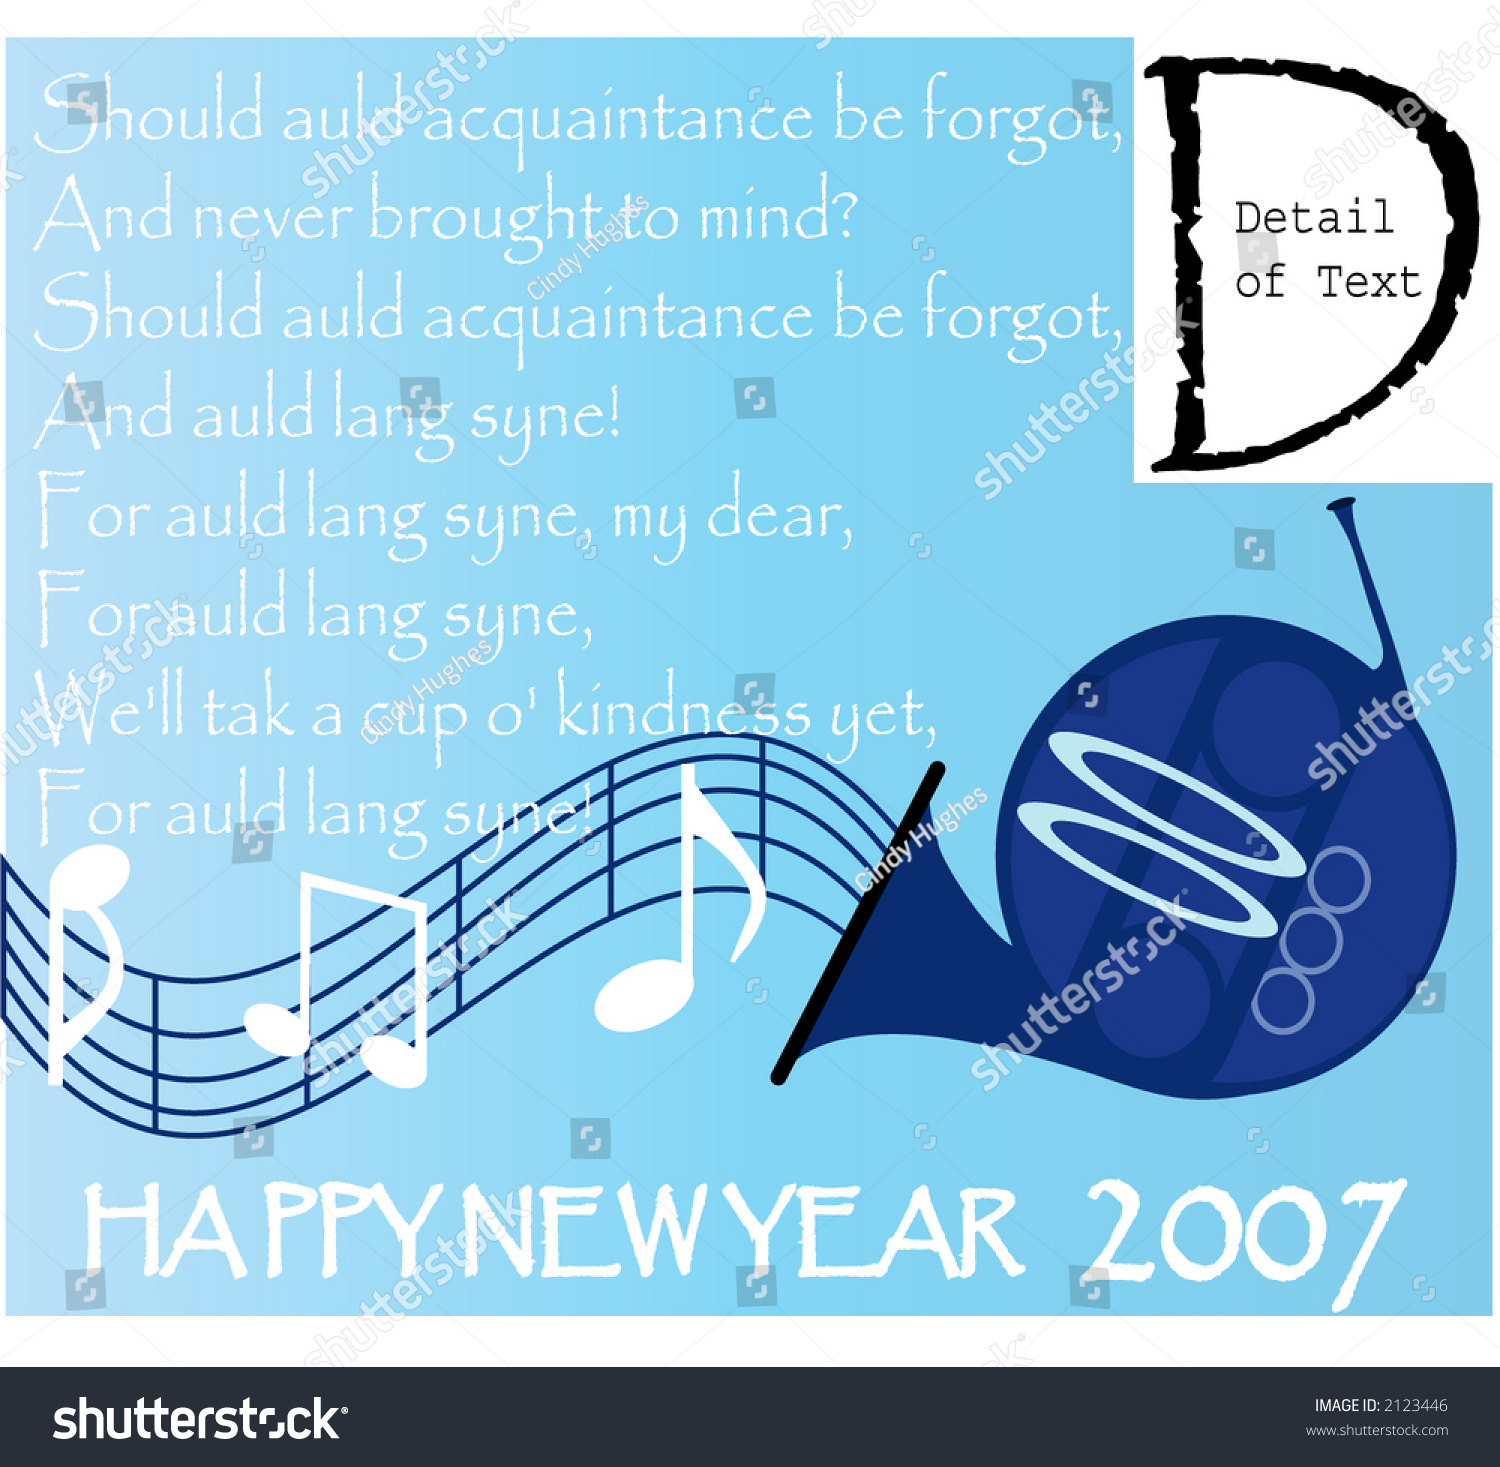 Happy New Year Words New Years Stock Vector 2123446 - Shutterstock